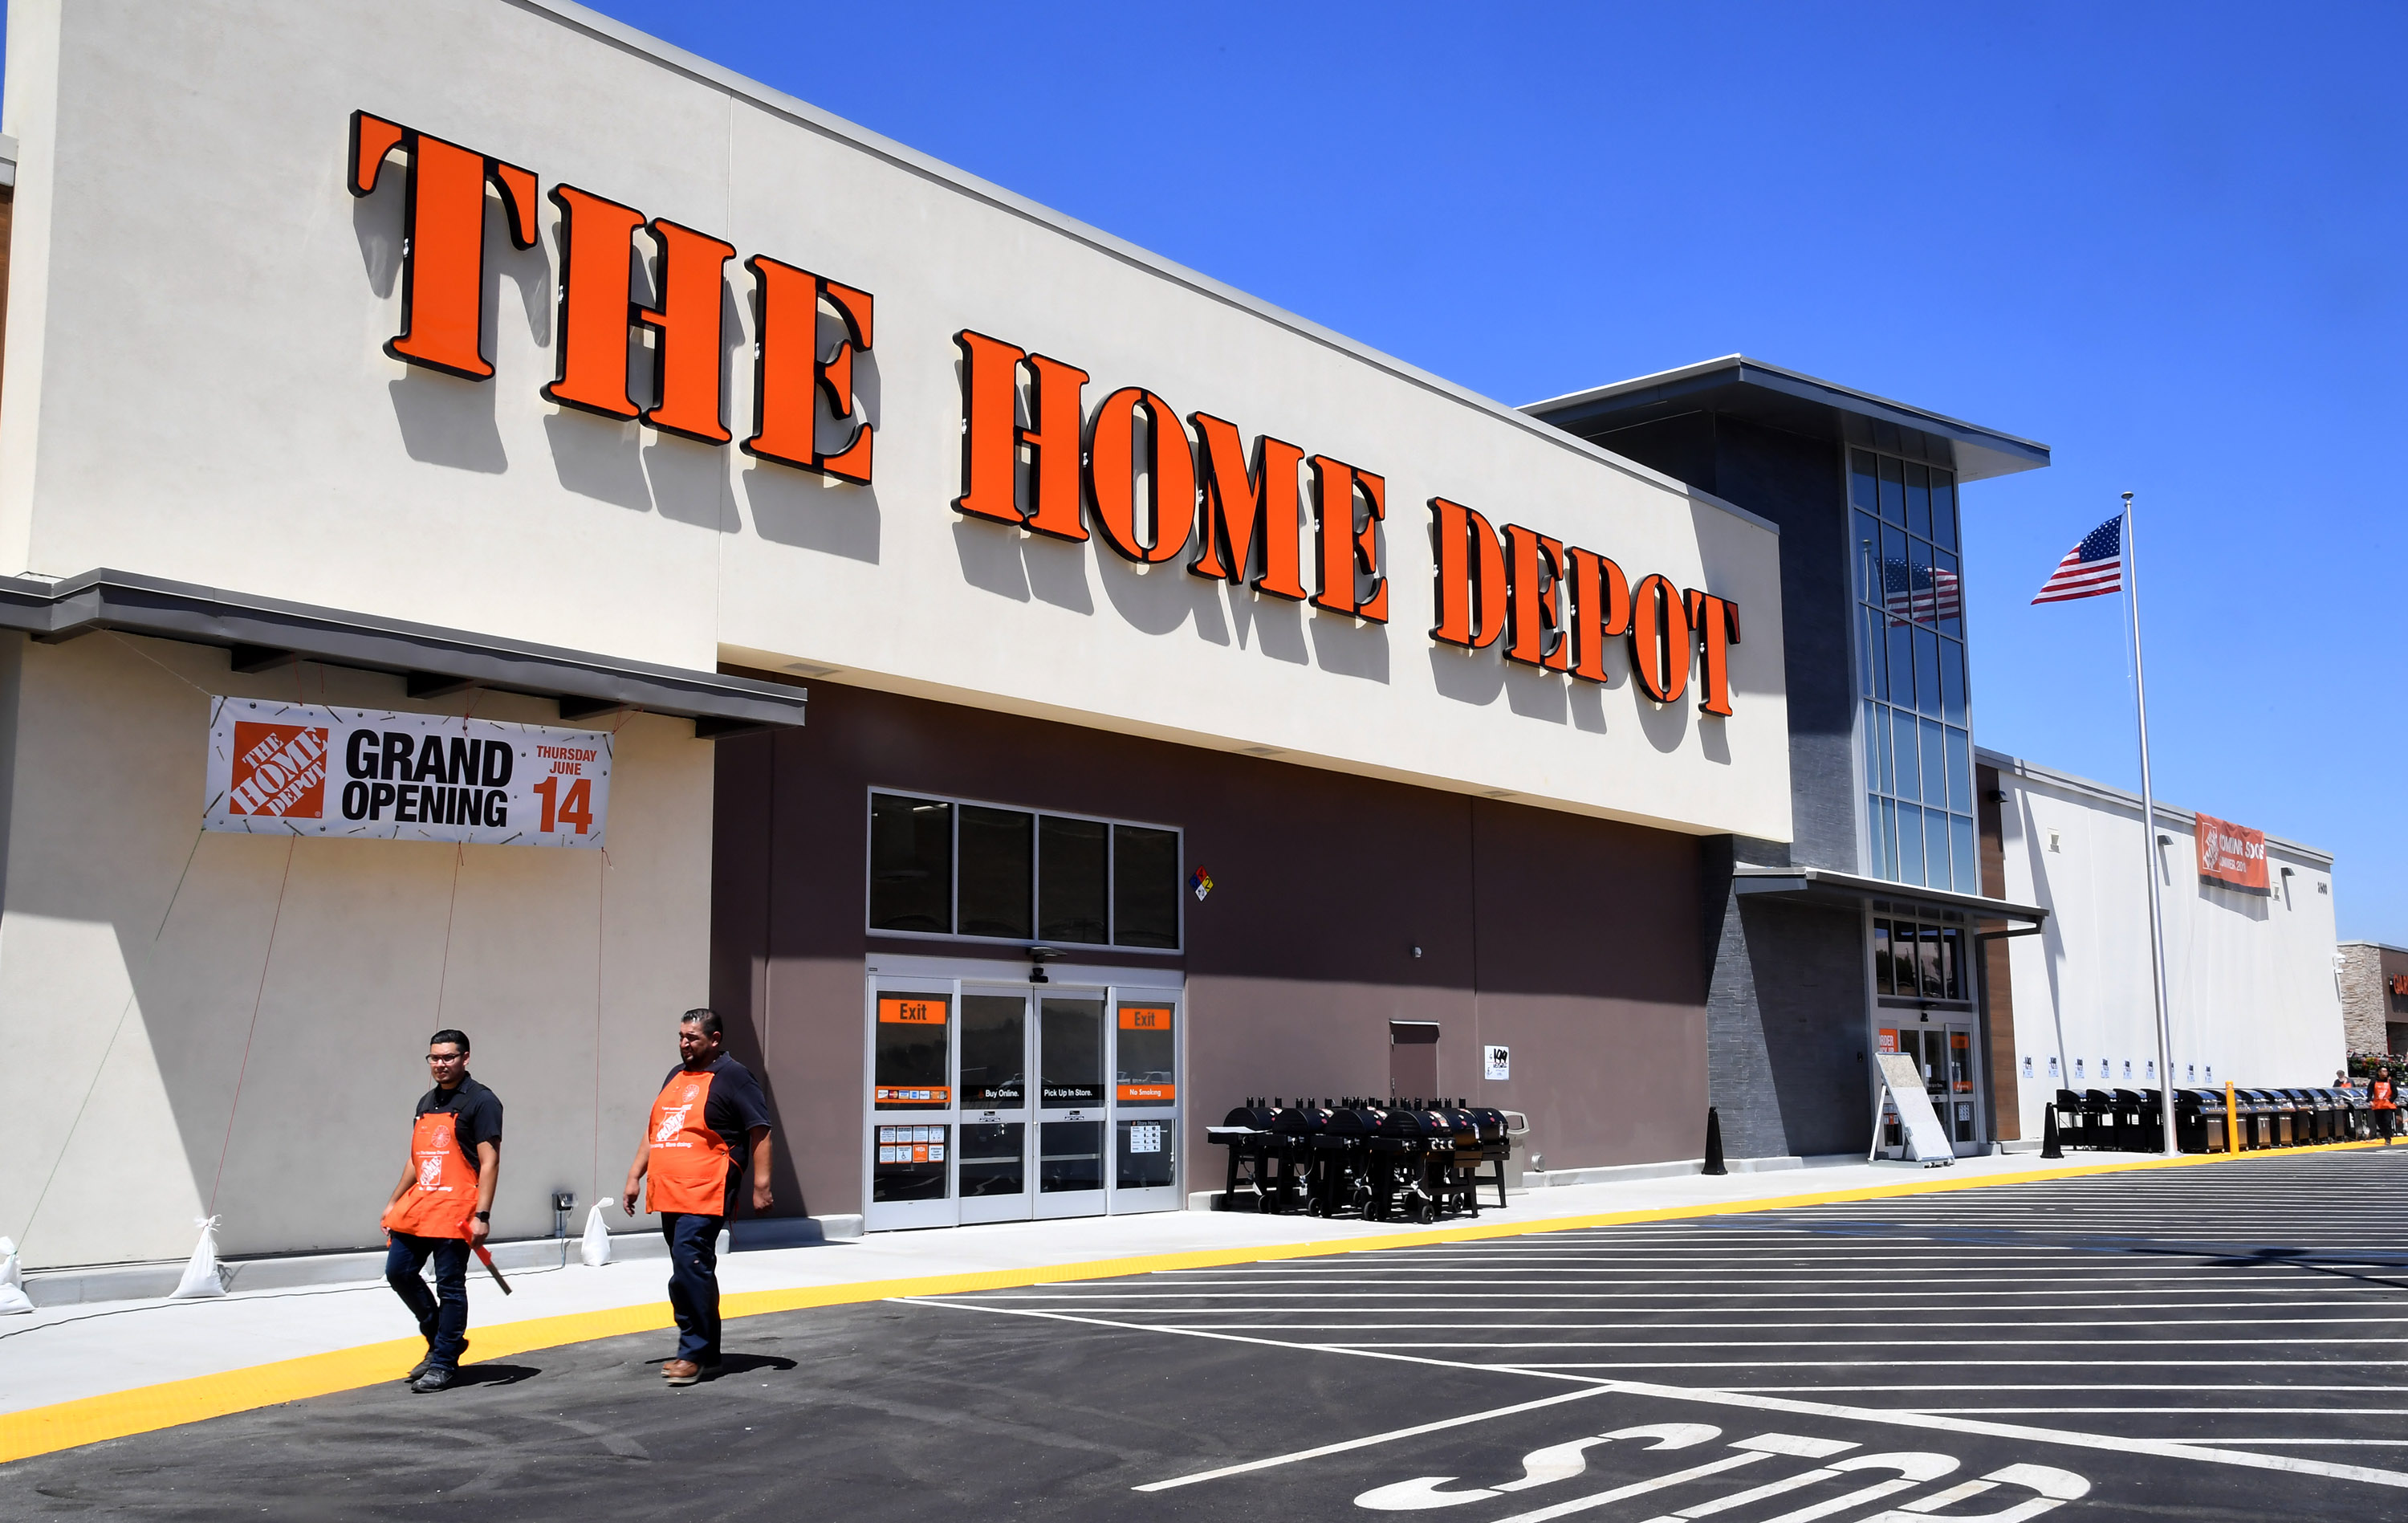 Bank Home Depot Home Depot To Unveil New Store In Monterey Park Pasadena Star News